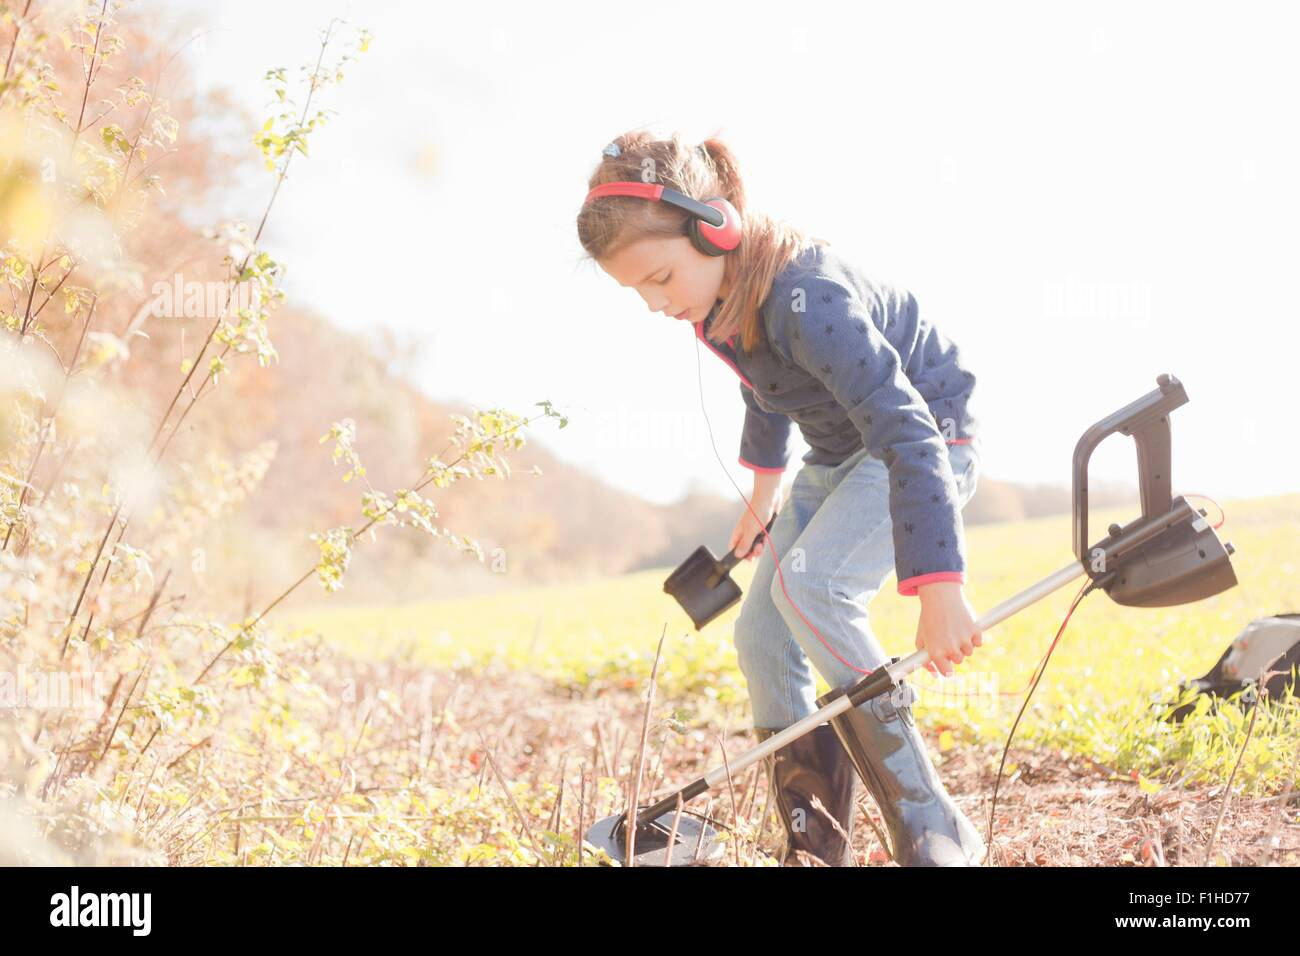 Girl crouching with spade and metal detector in field - Stock Image